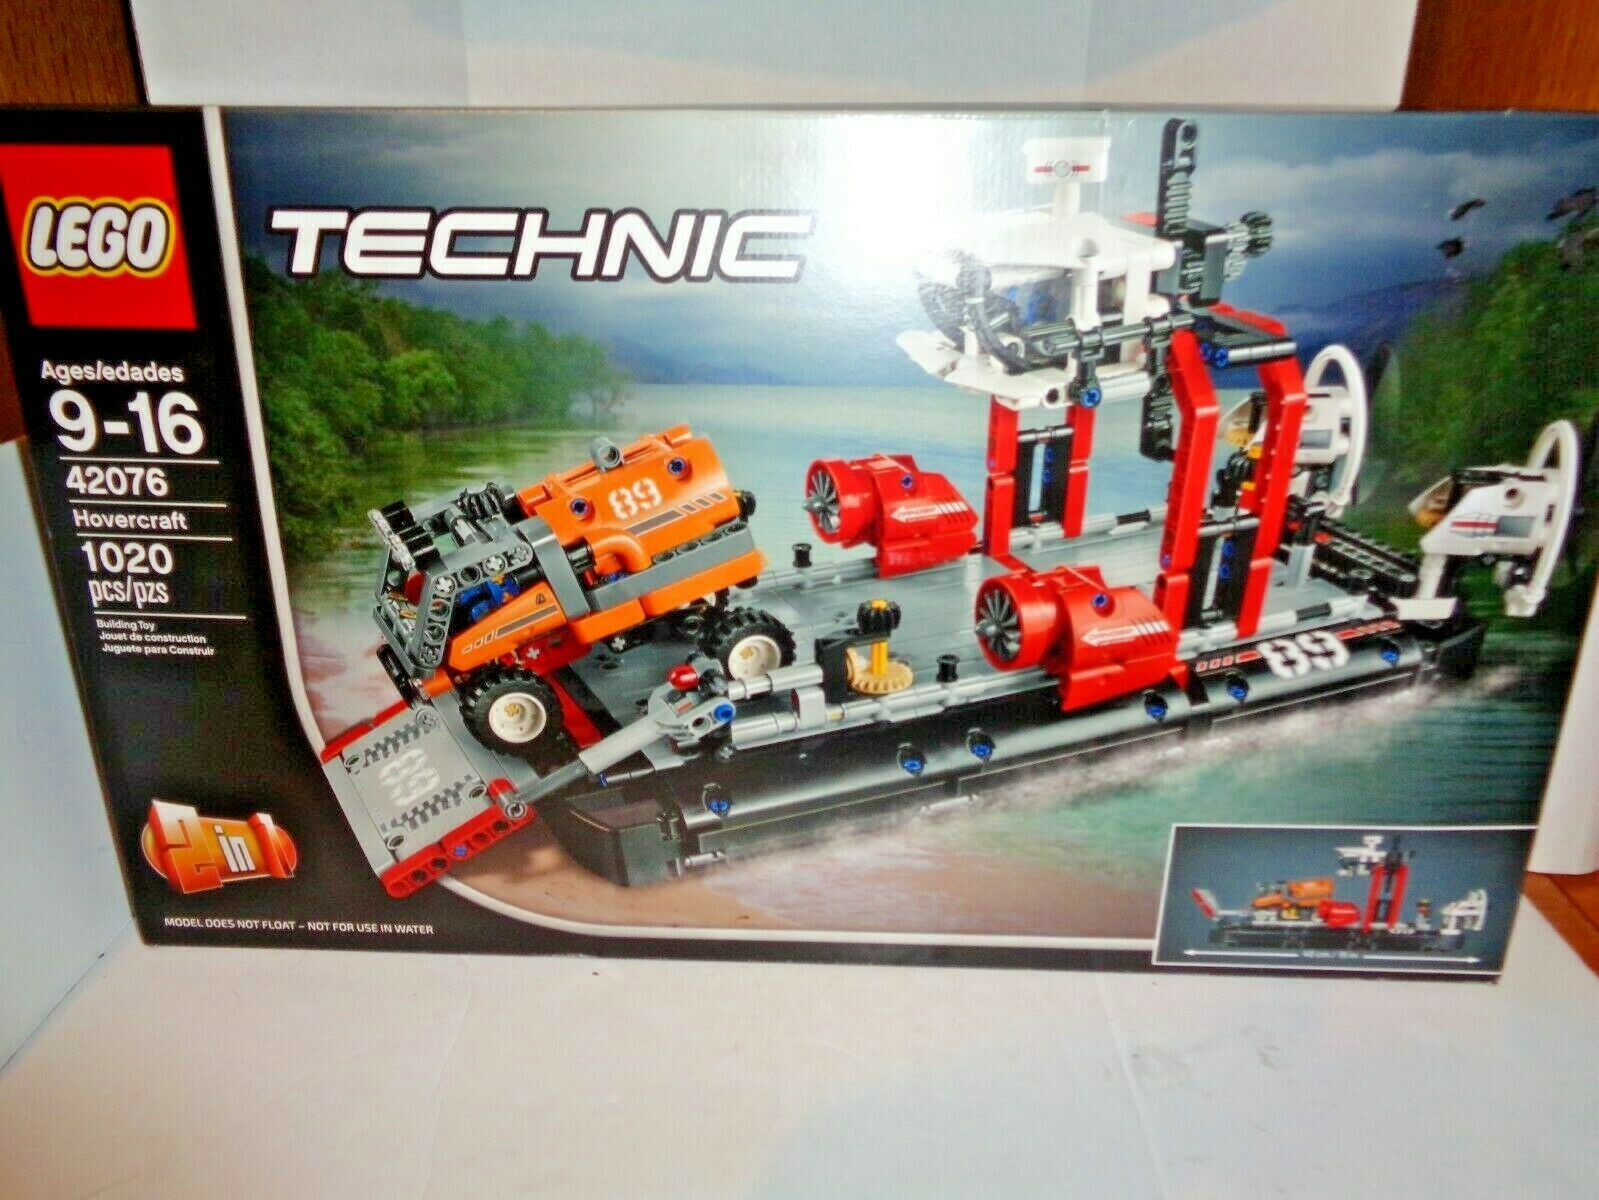 Lego Technic Set 42076 Hovercraft 1020 Bitar